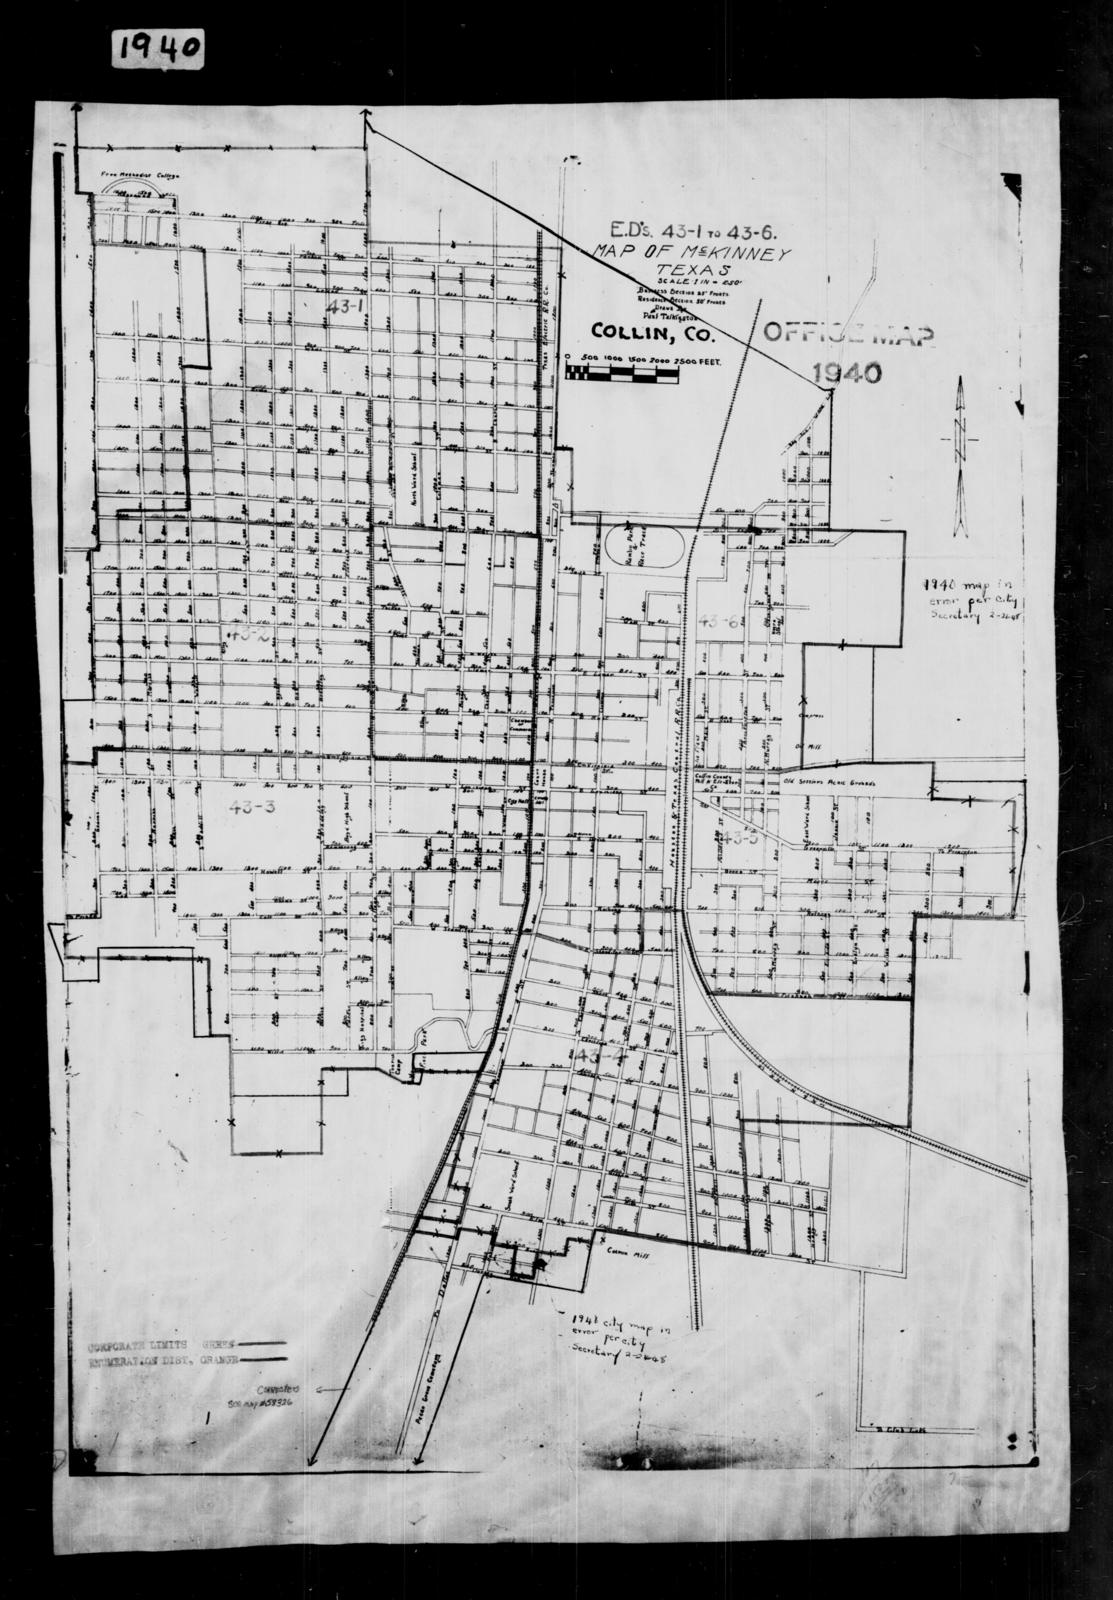 Map Of Texas District 6.1940 Census Enumeration District Maps Texas Collin County